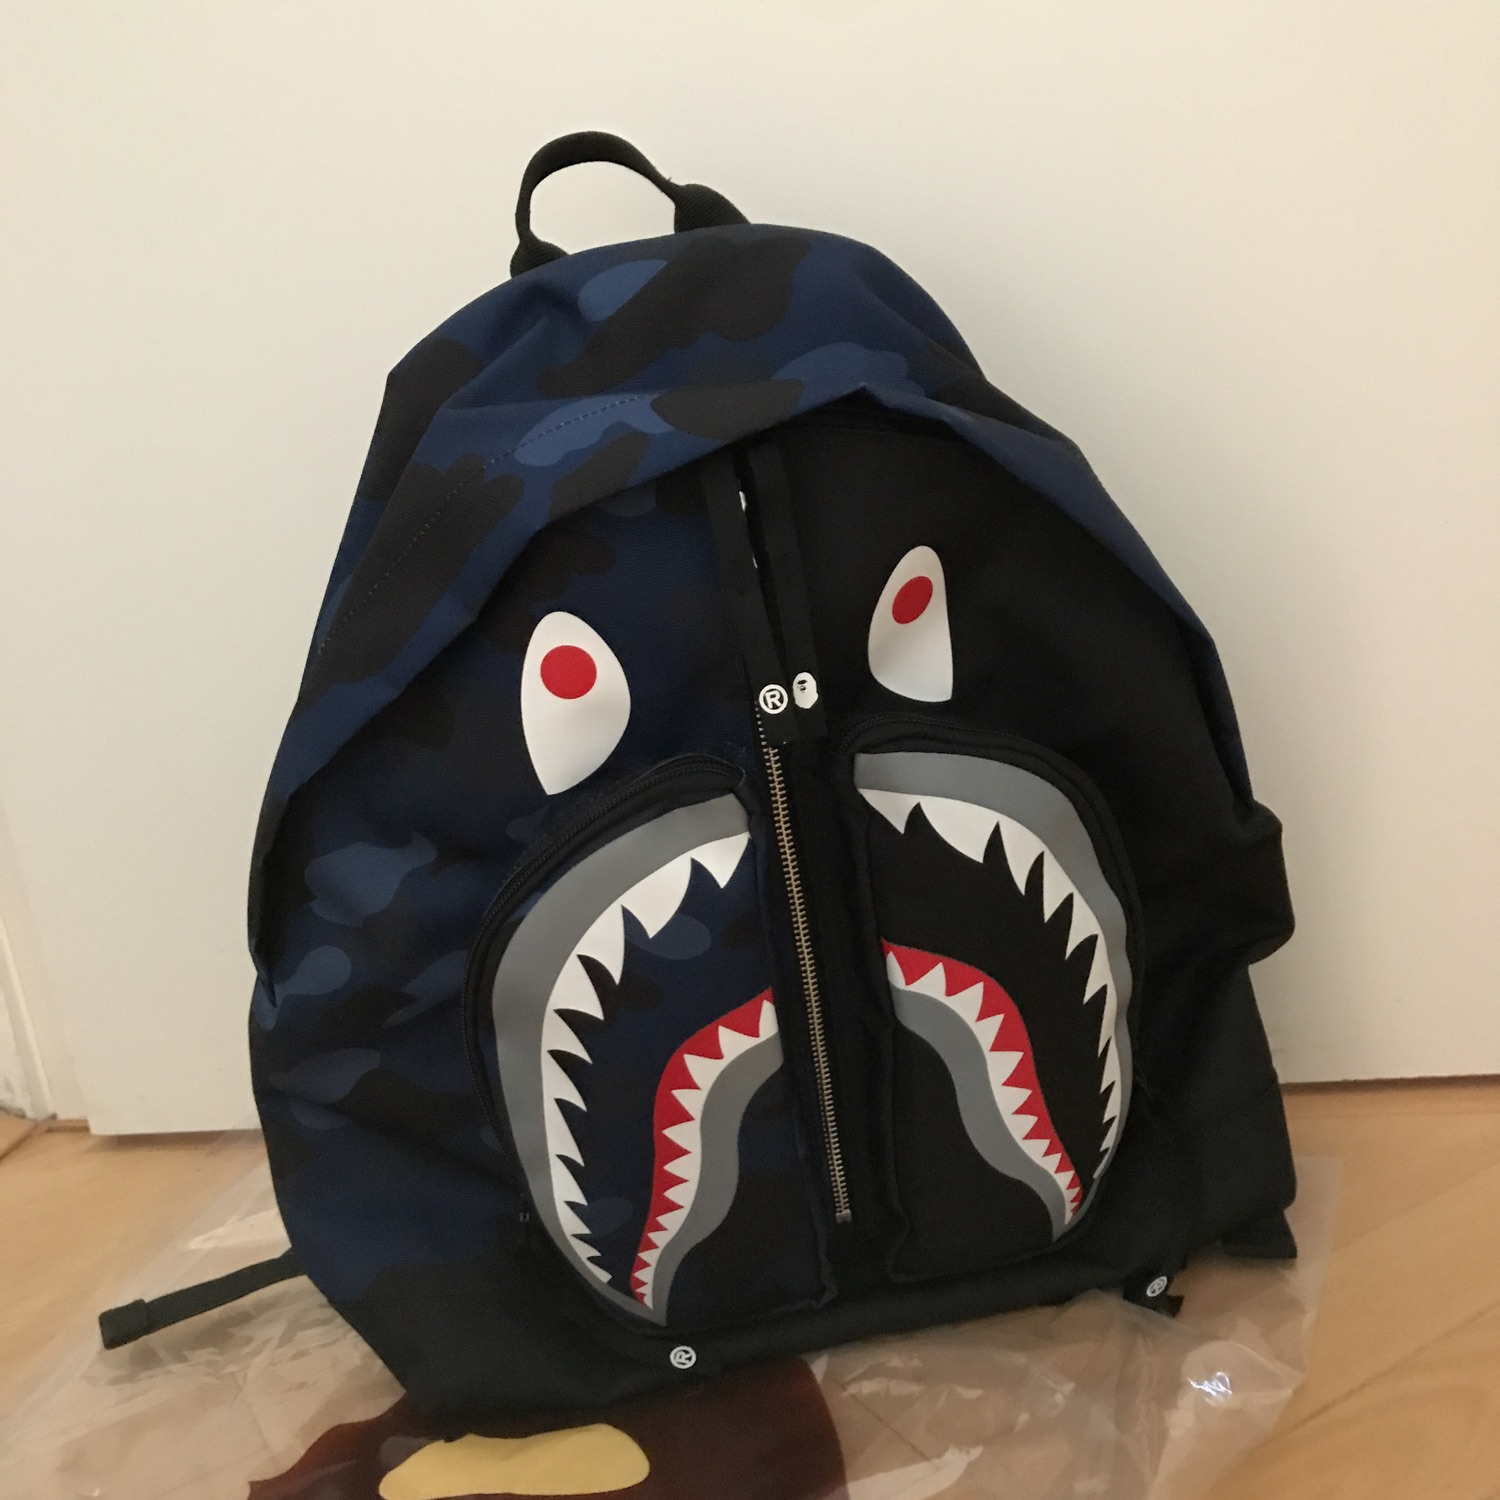 Bape Shark Backpack >> Bape Shark Backpack Steal